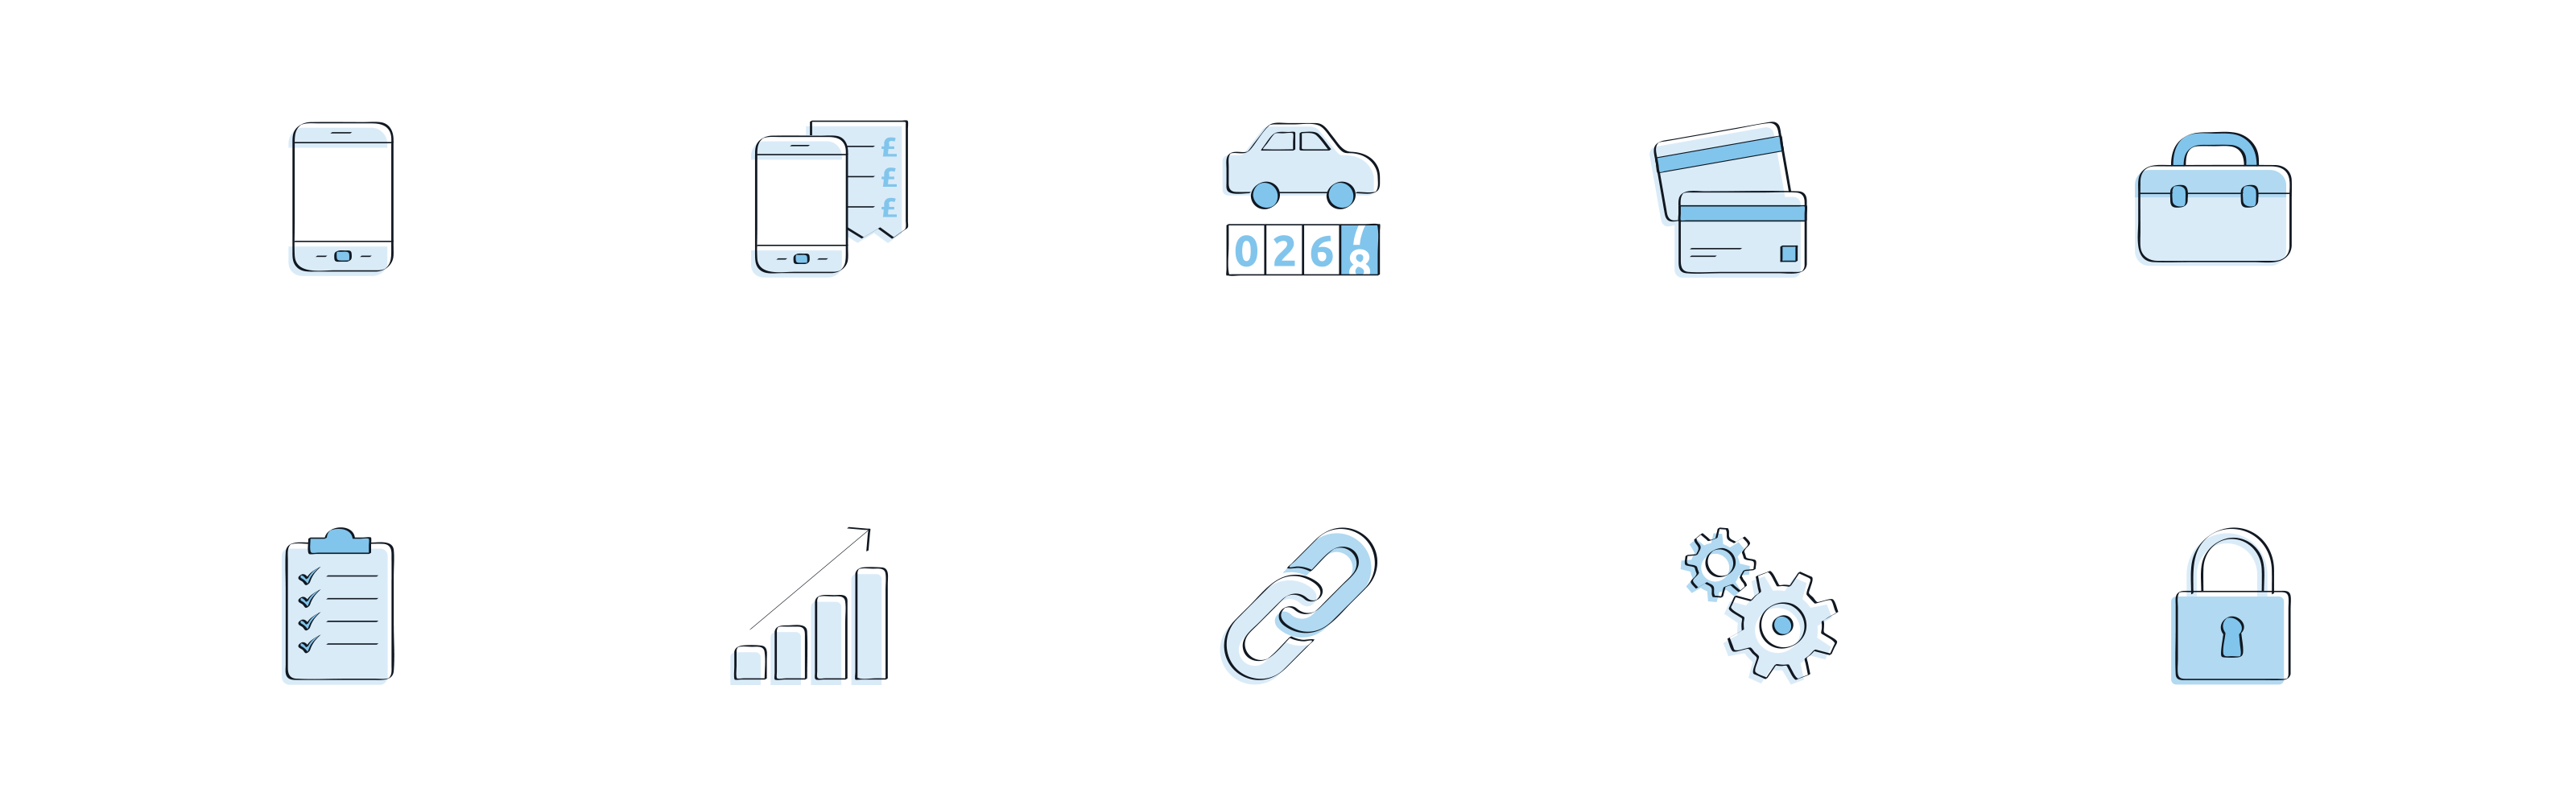 Webexpenses illustrated icon set